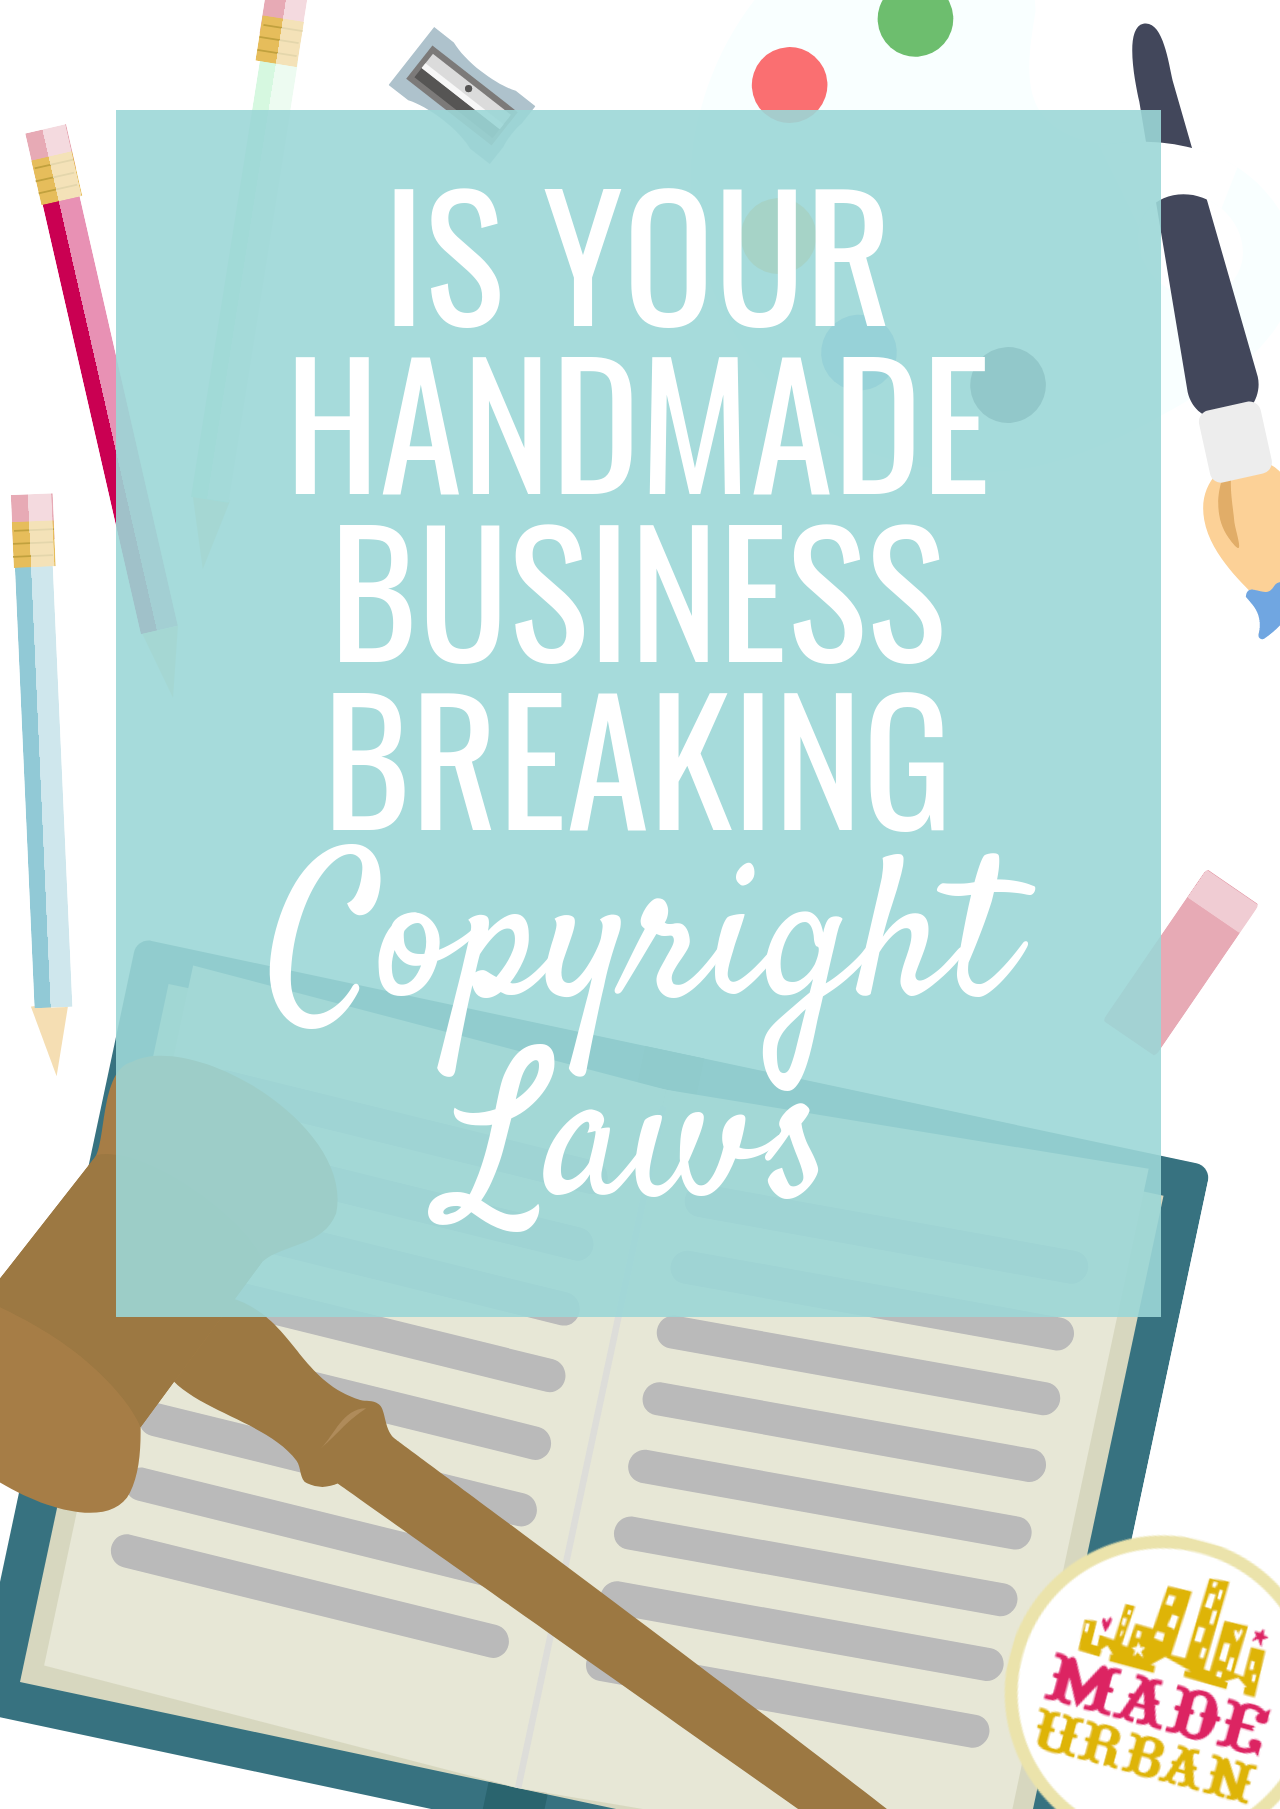 There are many handmade businesses unknowingly infringing on copyright laws but breaking the law by accident won't save your business from legal trouble.